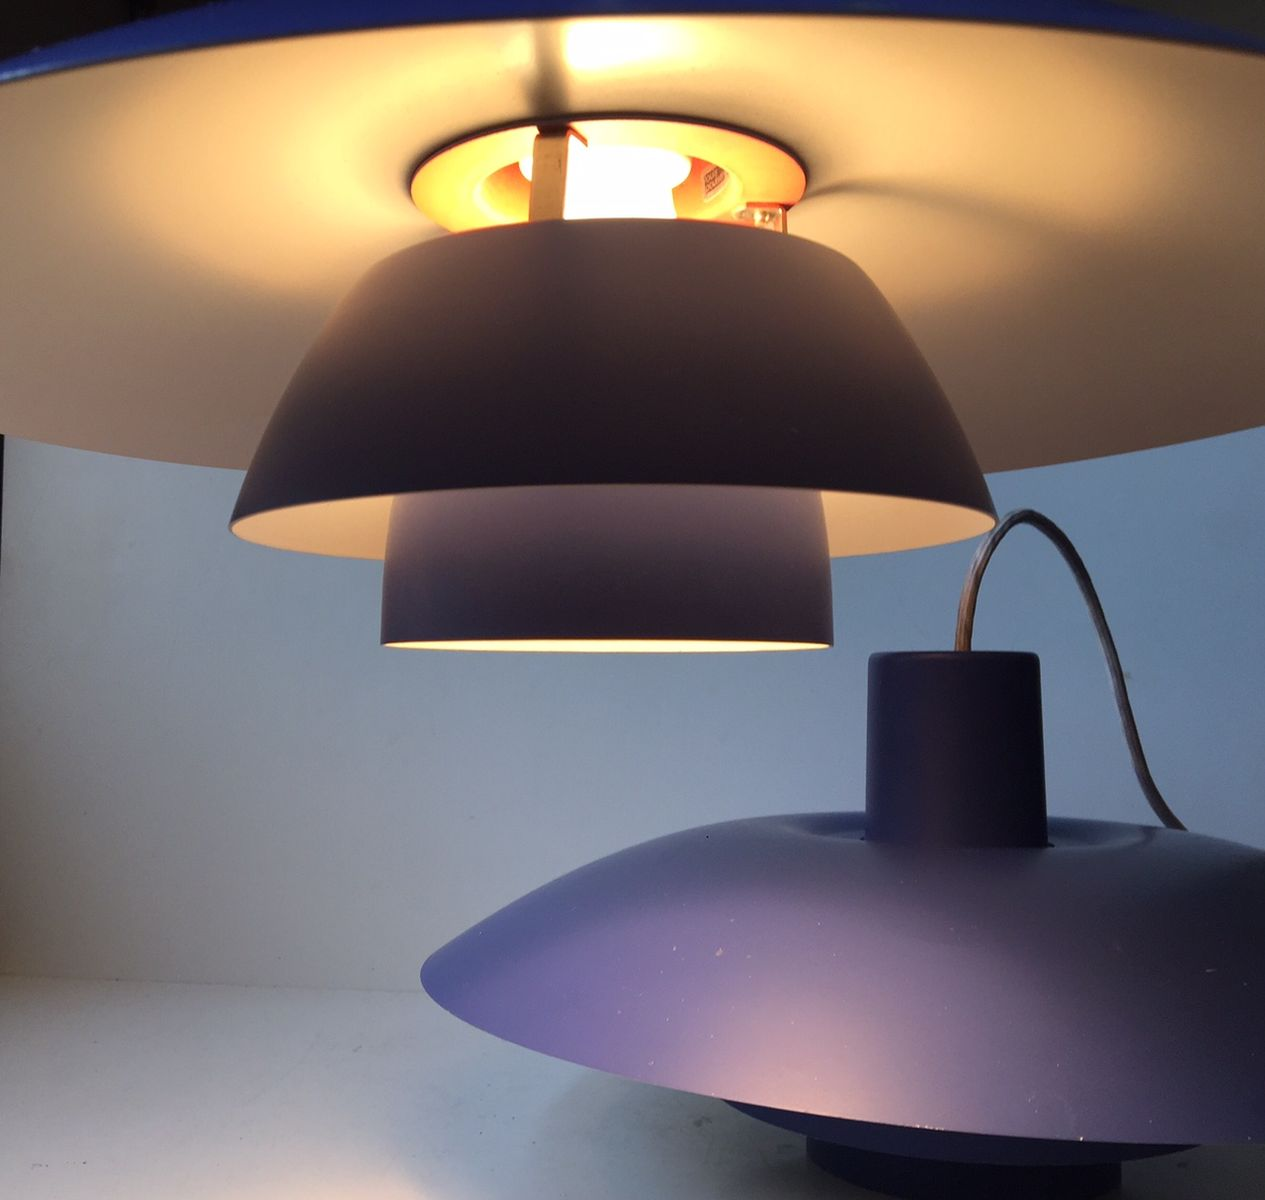 blue ph4 3 pendant lamps by poul henningsen for louis poulsen 1970s set of 2 for sale at pamono. Black Bedroom Furniture Sets. Home Design Ideas